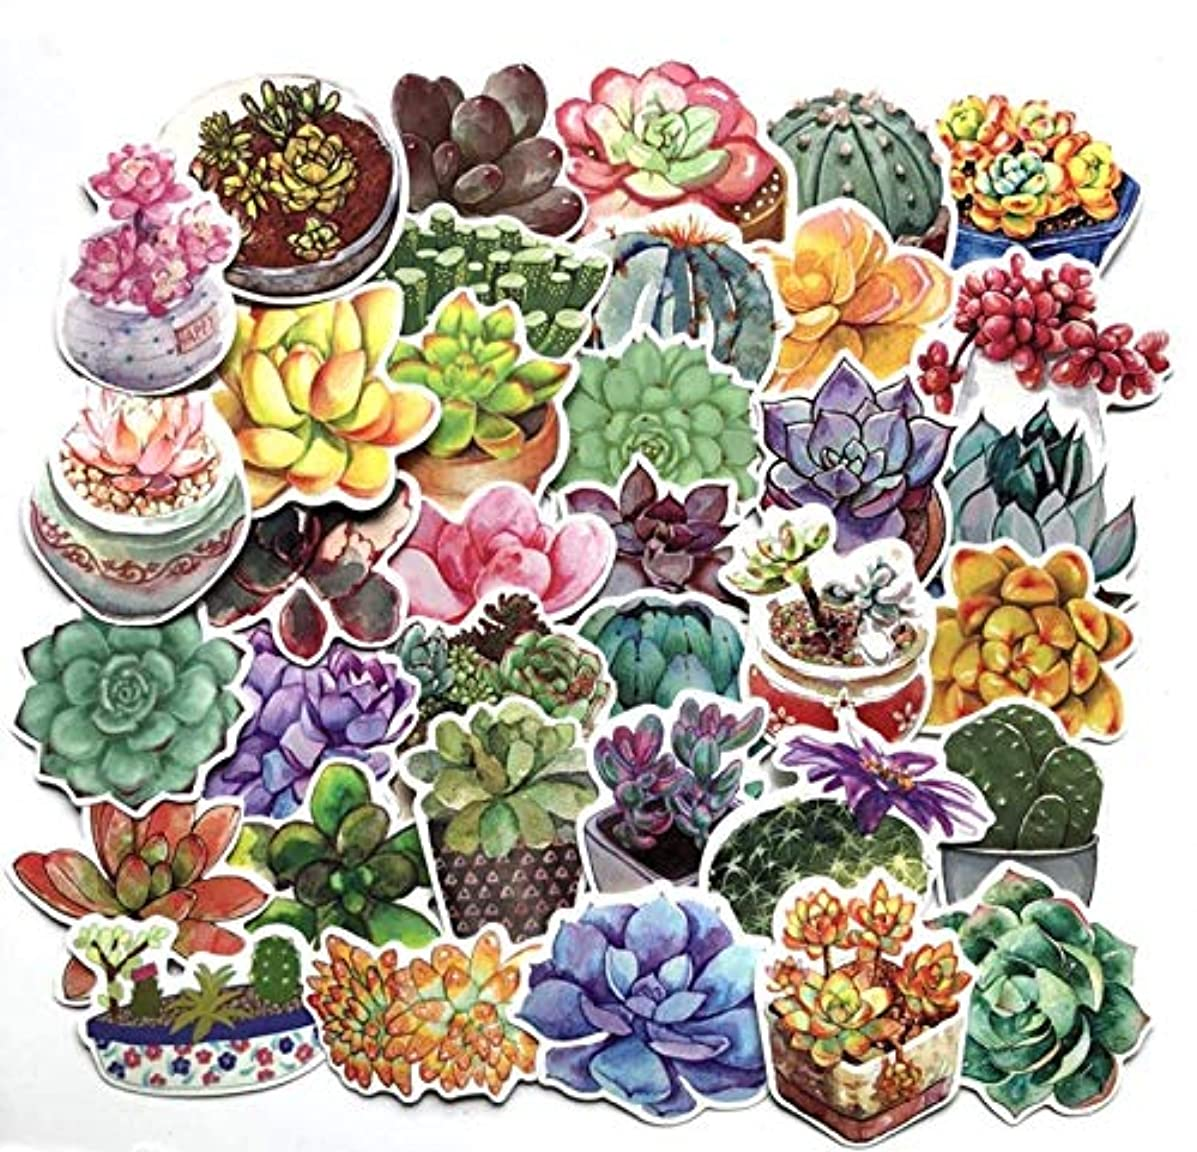 Astra Gourmet Cute Potted Cactus and Succulent Plants Stickers for Your Laptop, Scrapbook, and Daily Planner by Navy Peony (71 Pieces)